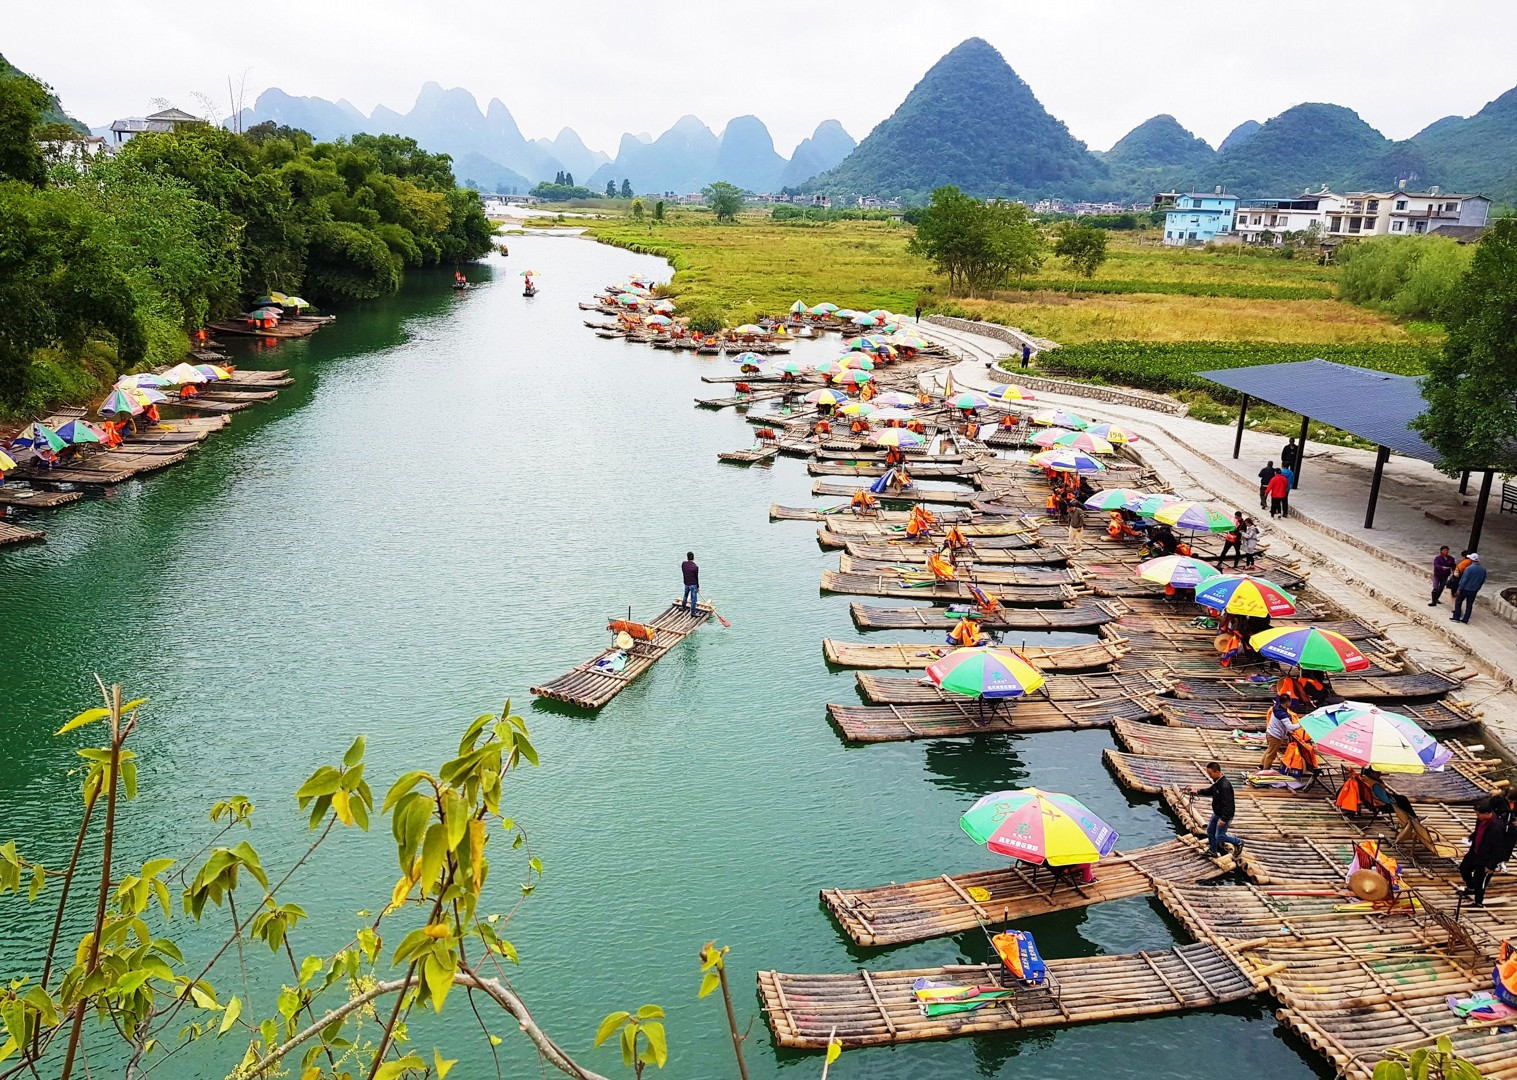 20171017_143146.jpg - China - Guilin and Guangxi - Cycling Adventures